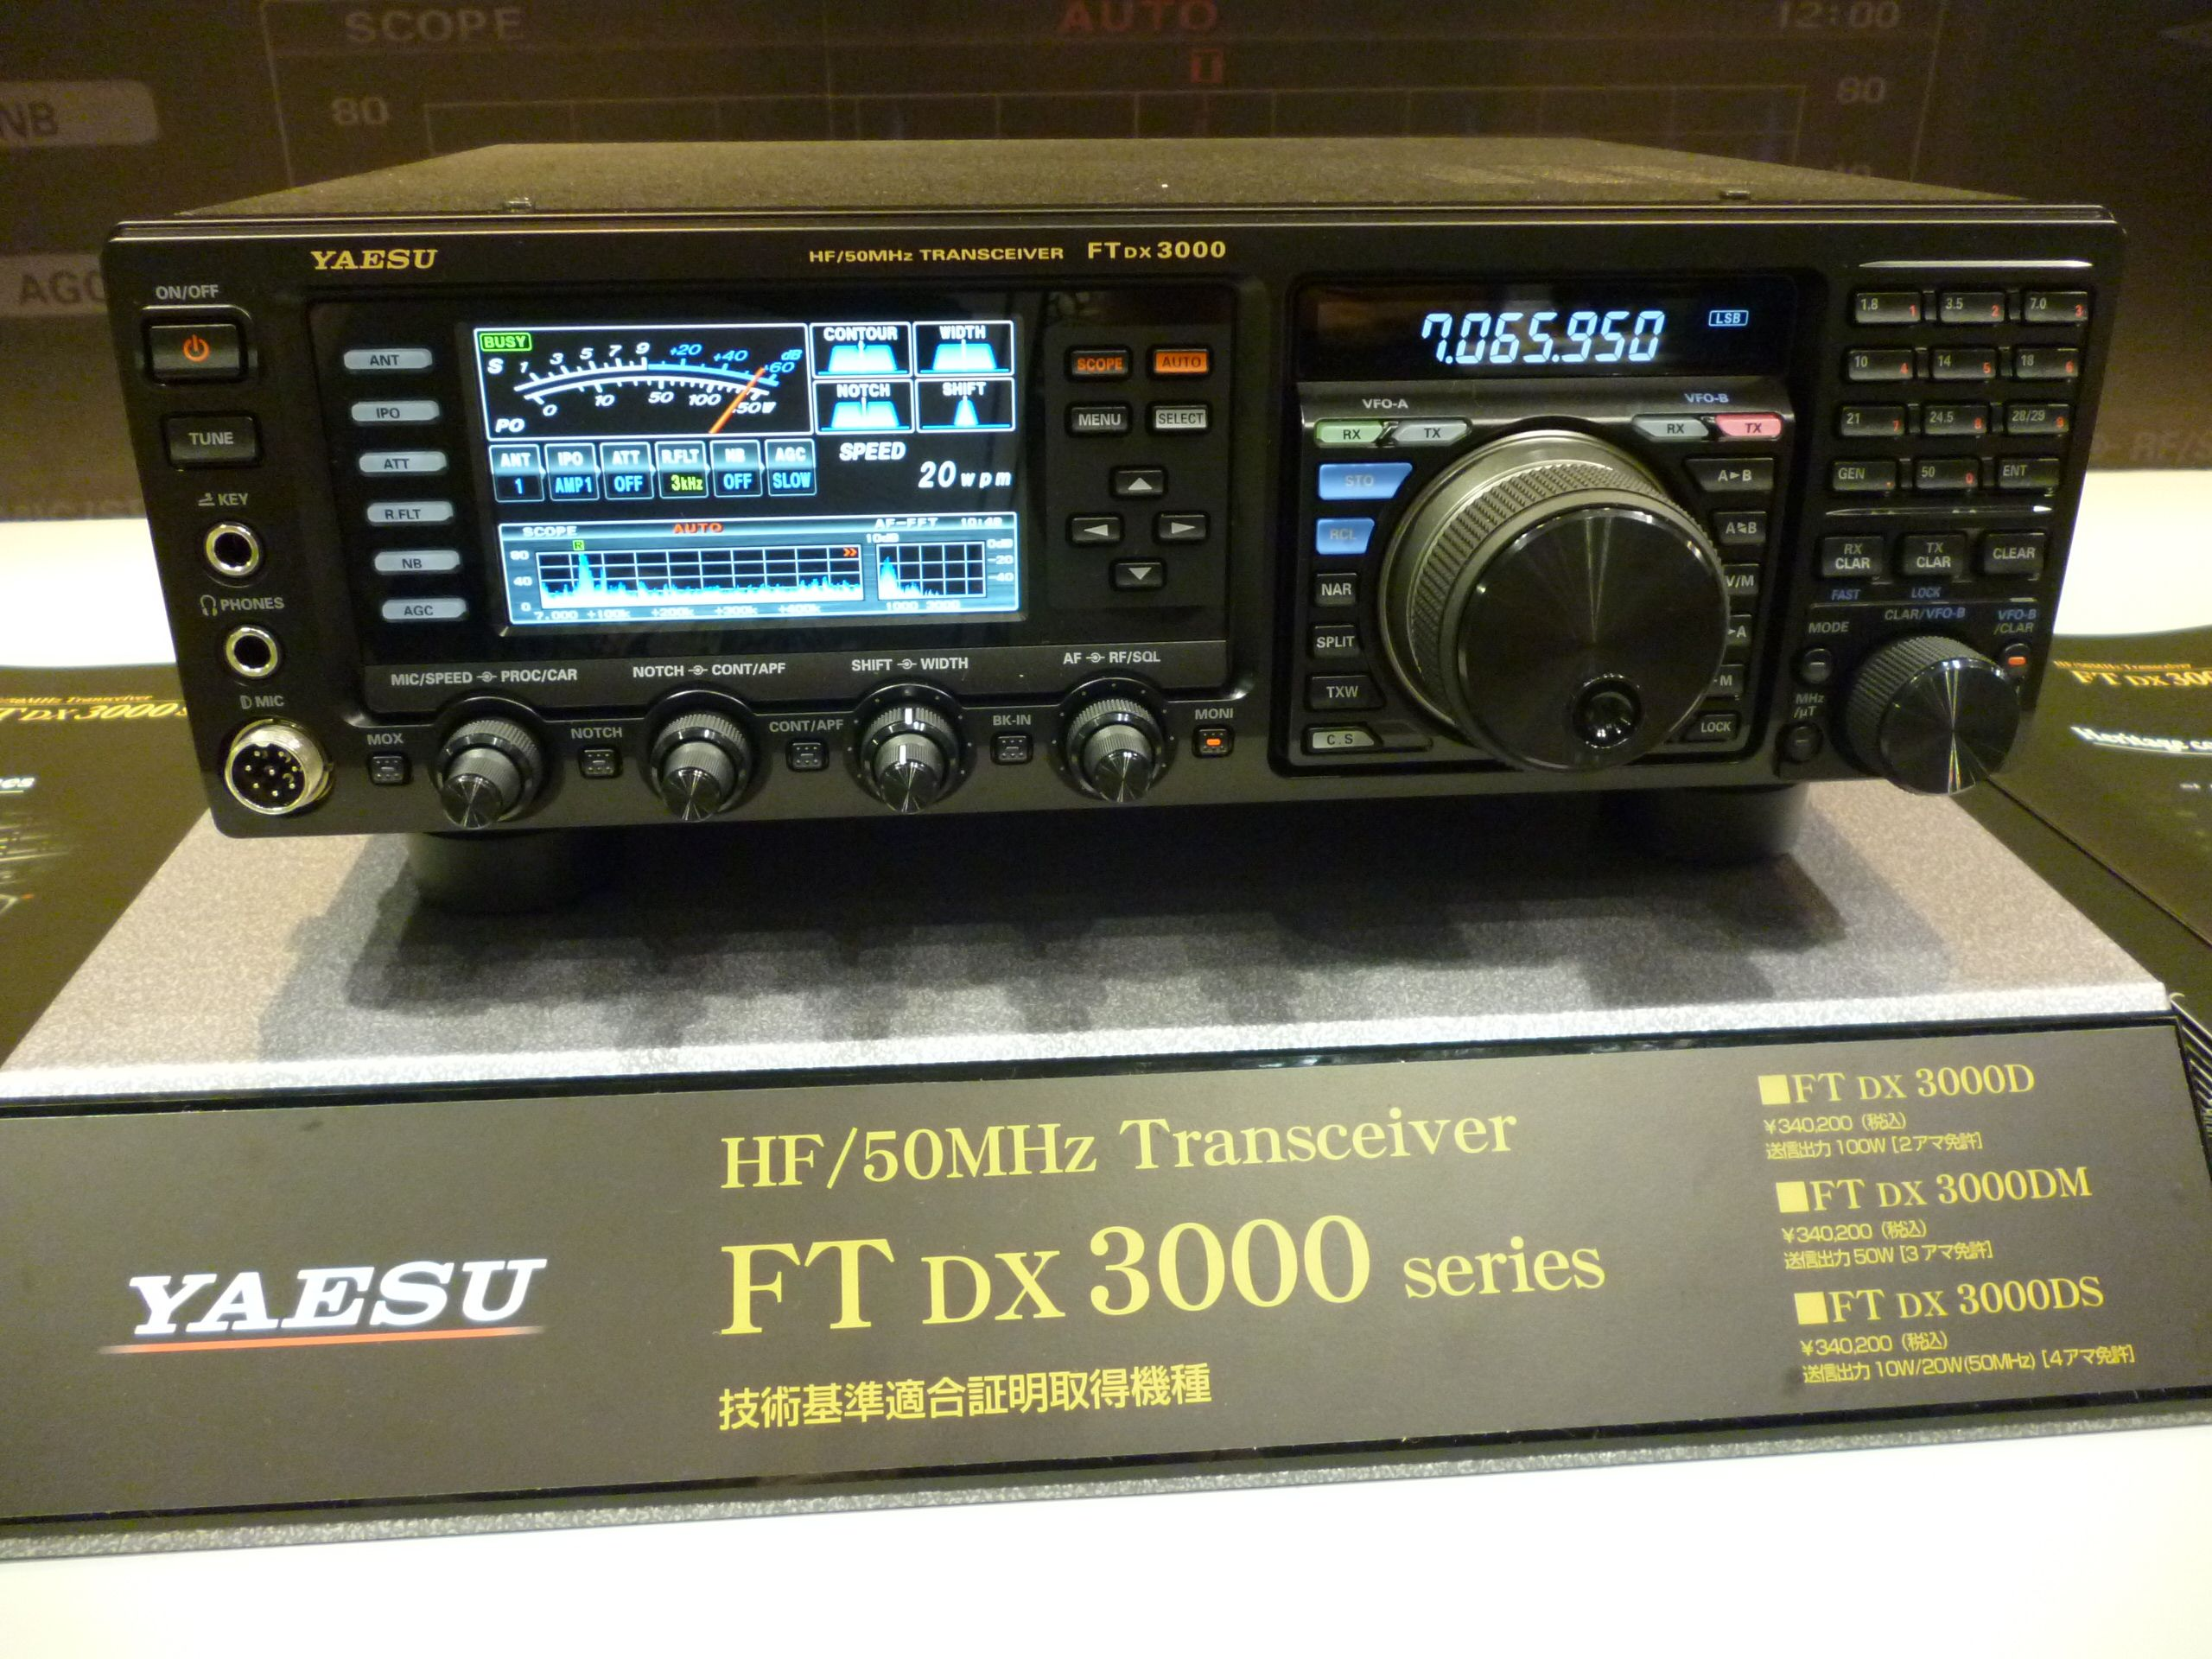 Yaesu ft dx 3000 dvs 6 images frompo for Ft 3000